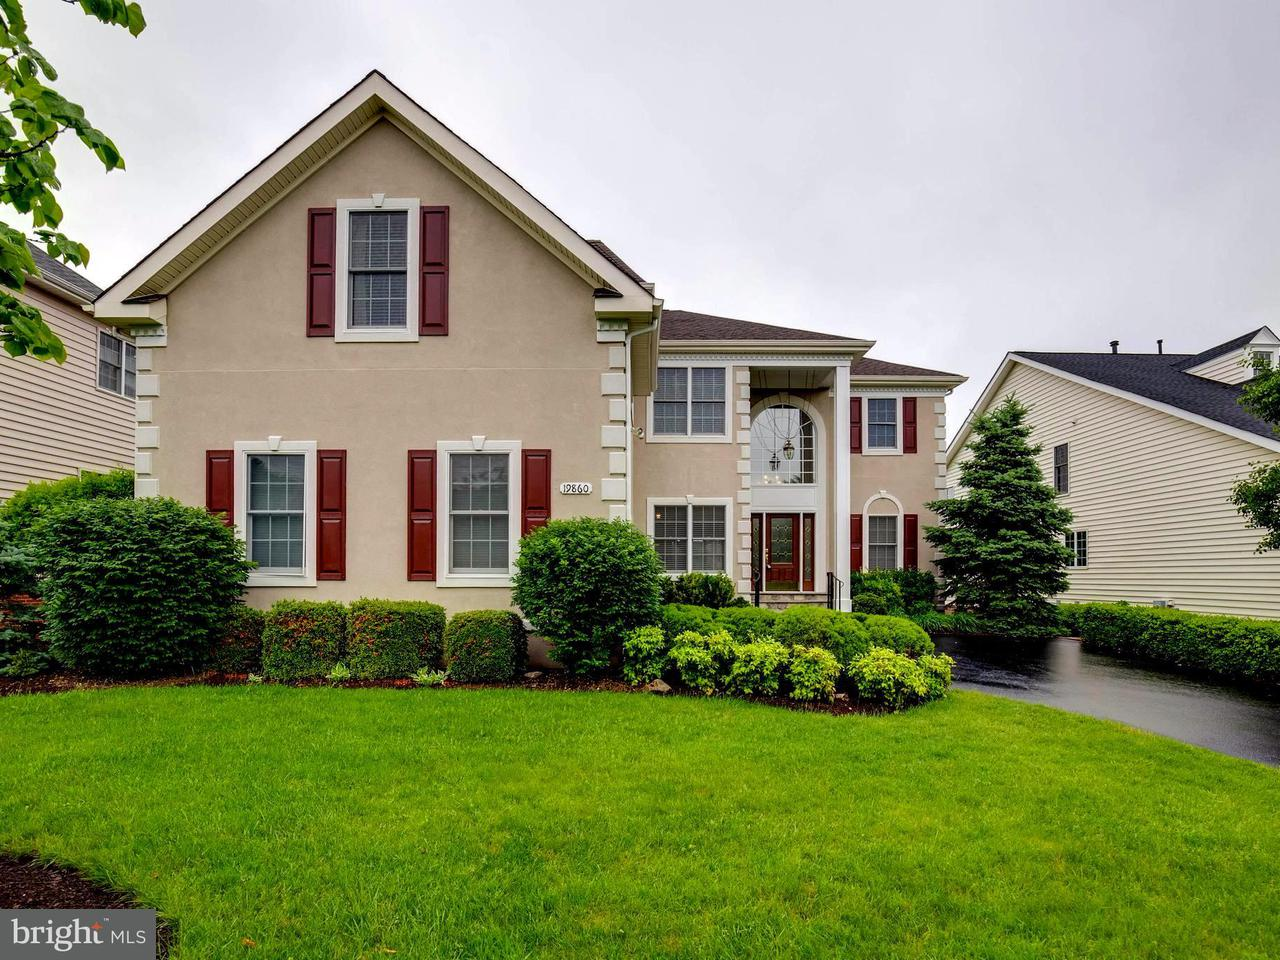 Single Family Home for Sale at 19860 BETHPAGE Court 19860 BETHPAGE Court Ashburn, Virginia 20147 United States